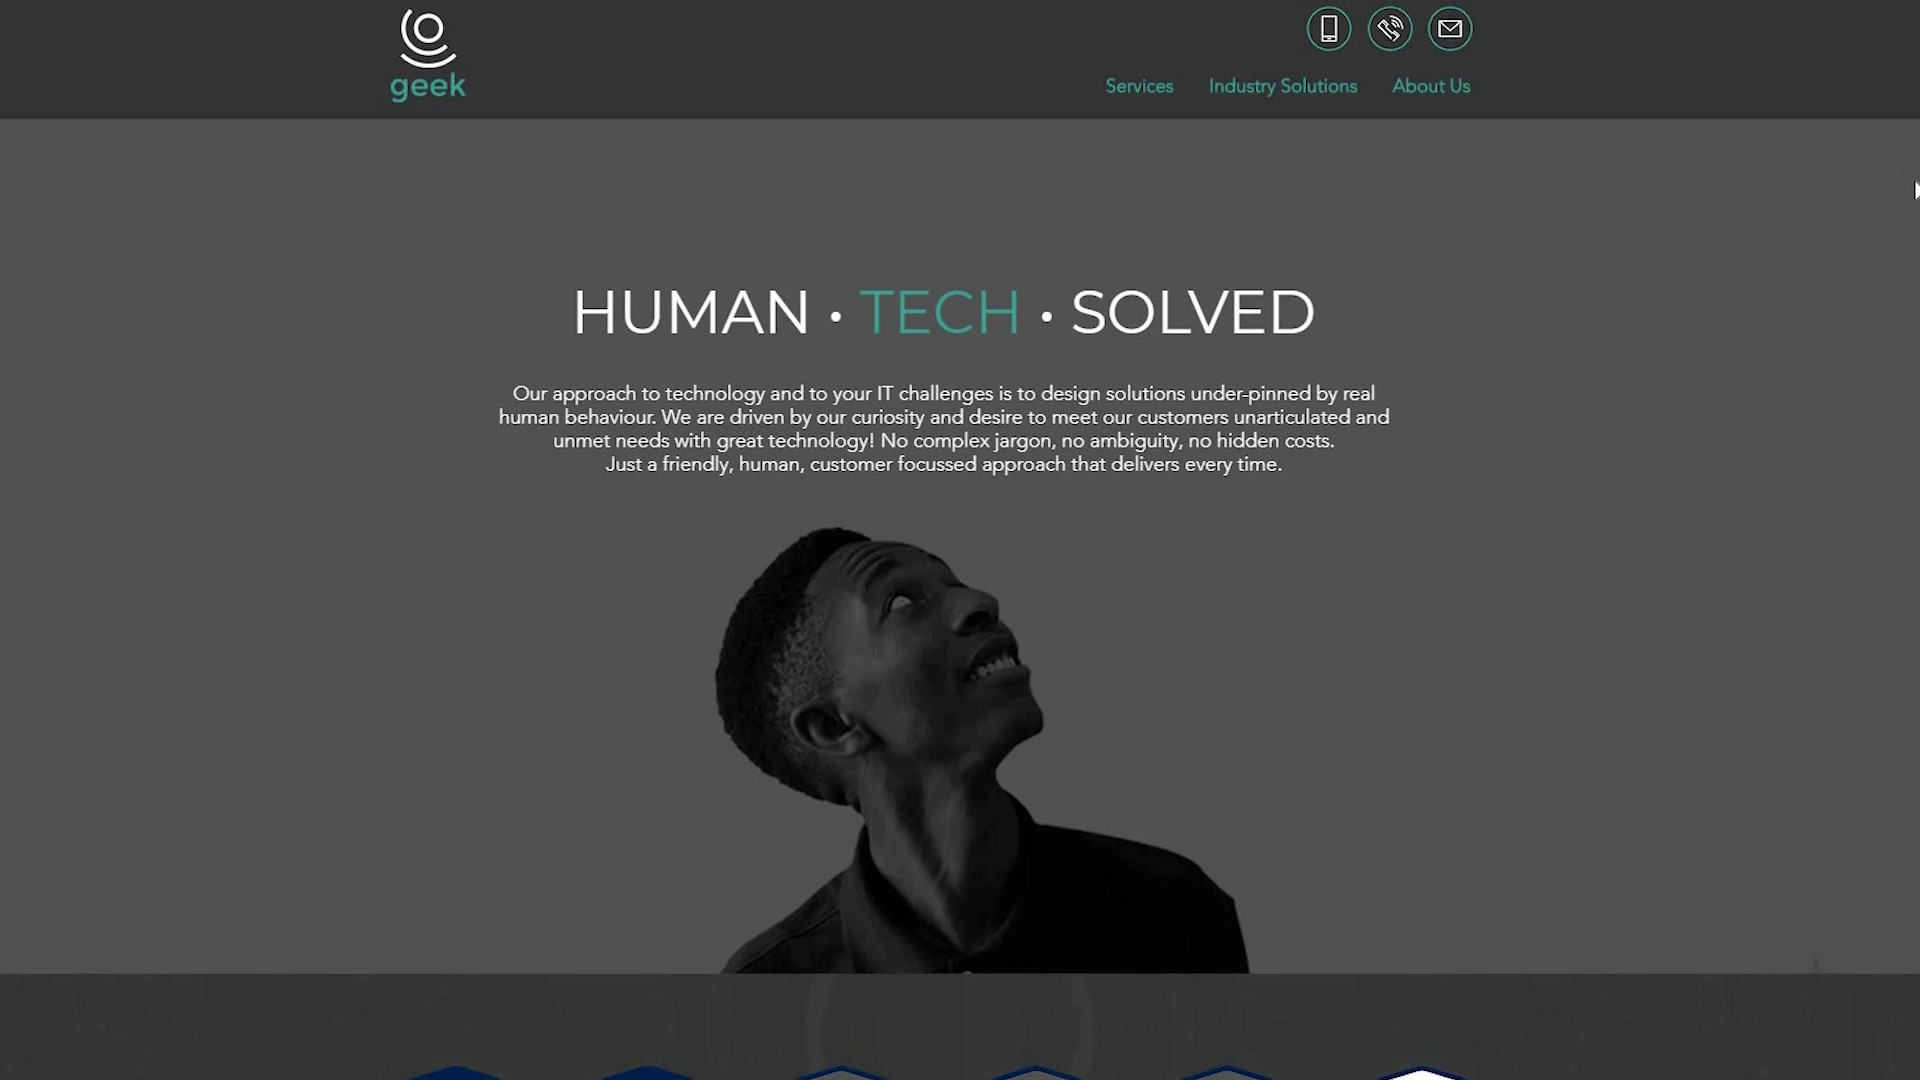 Geek Managed Services Human. Tech. Solved